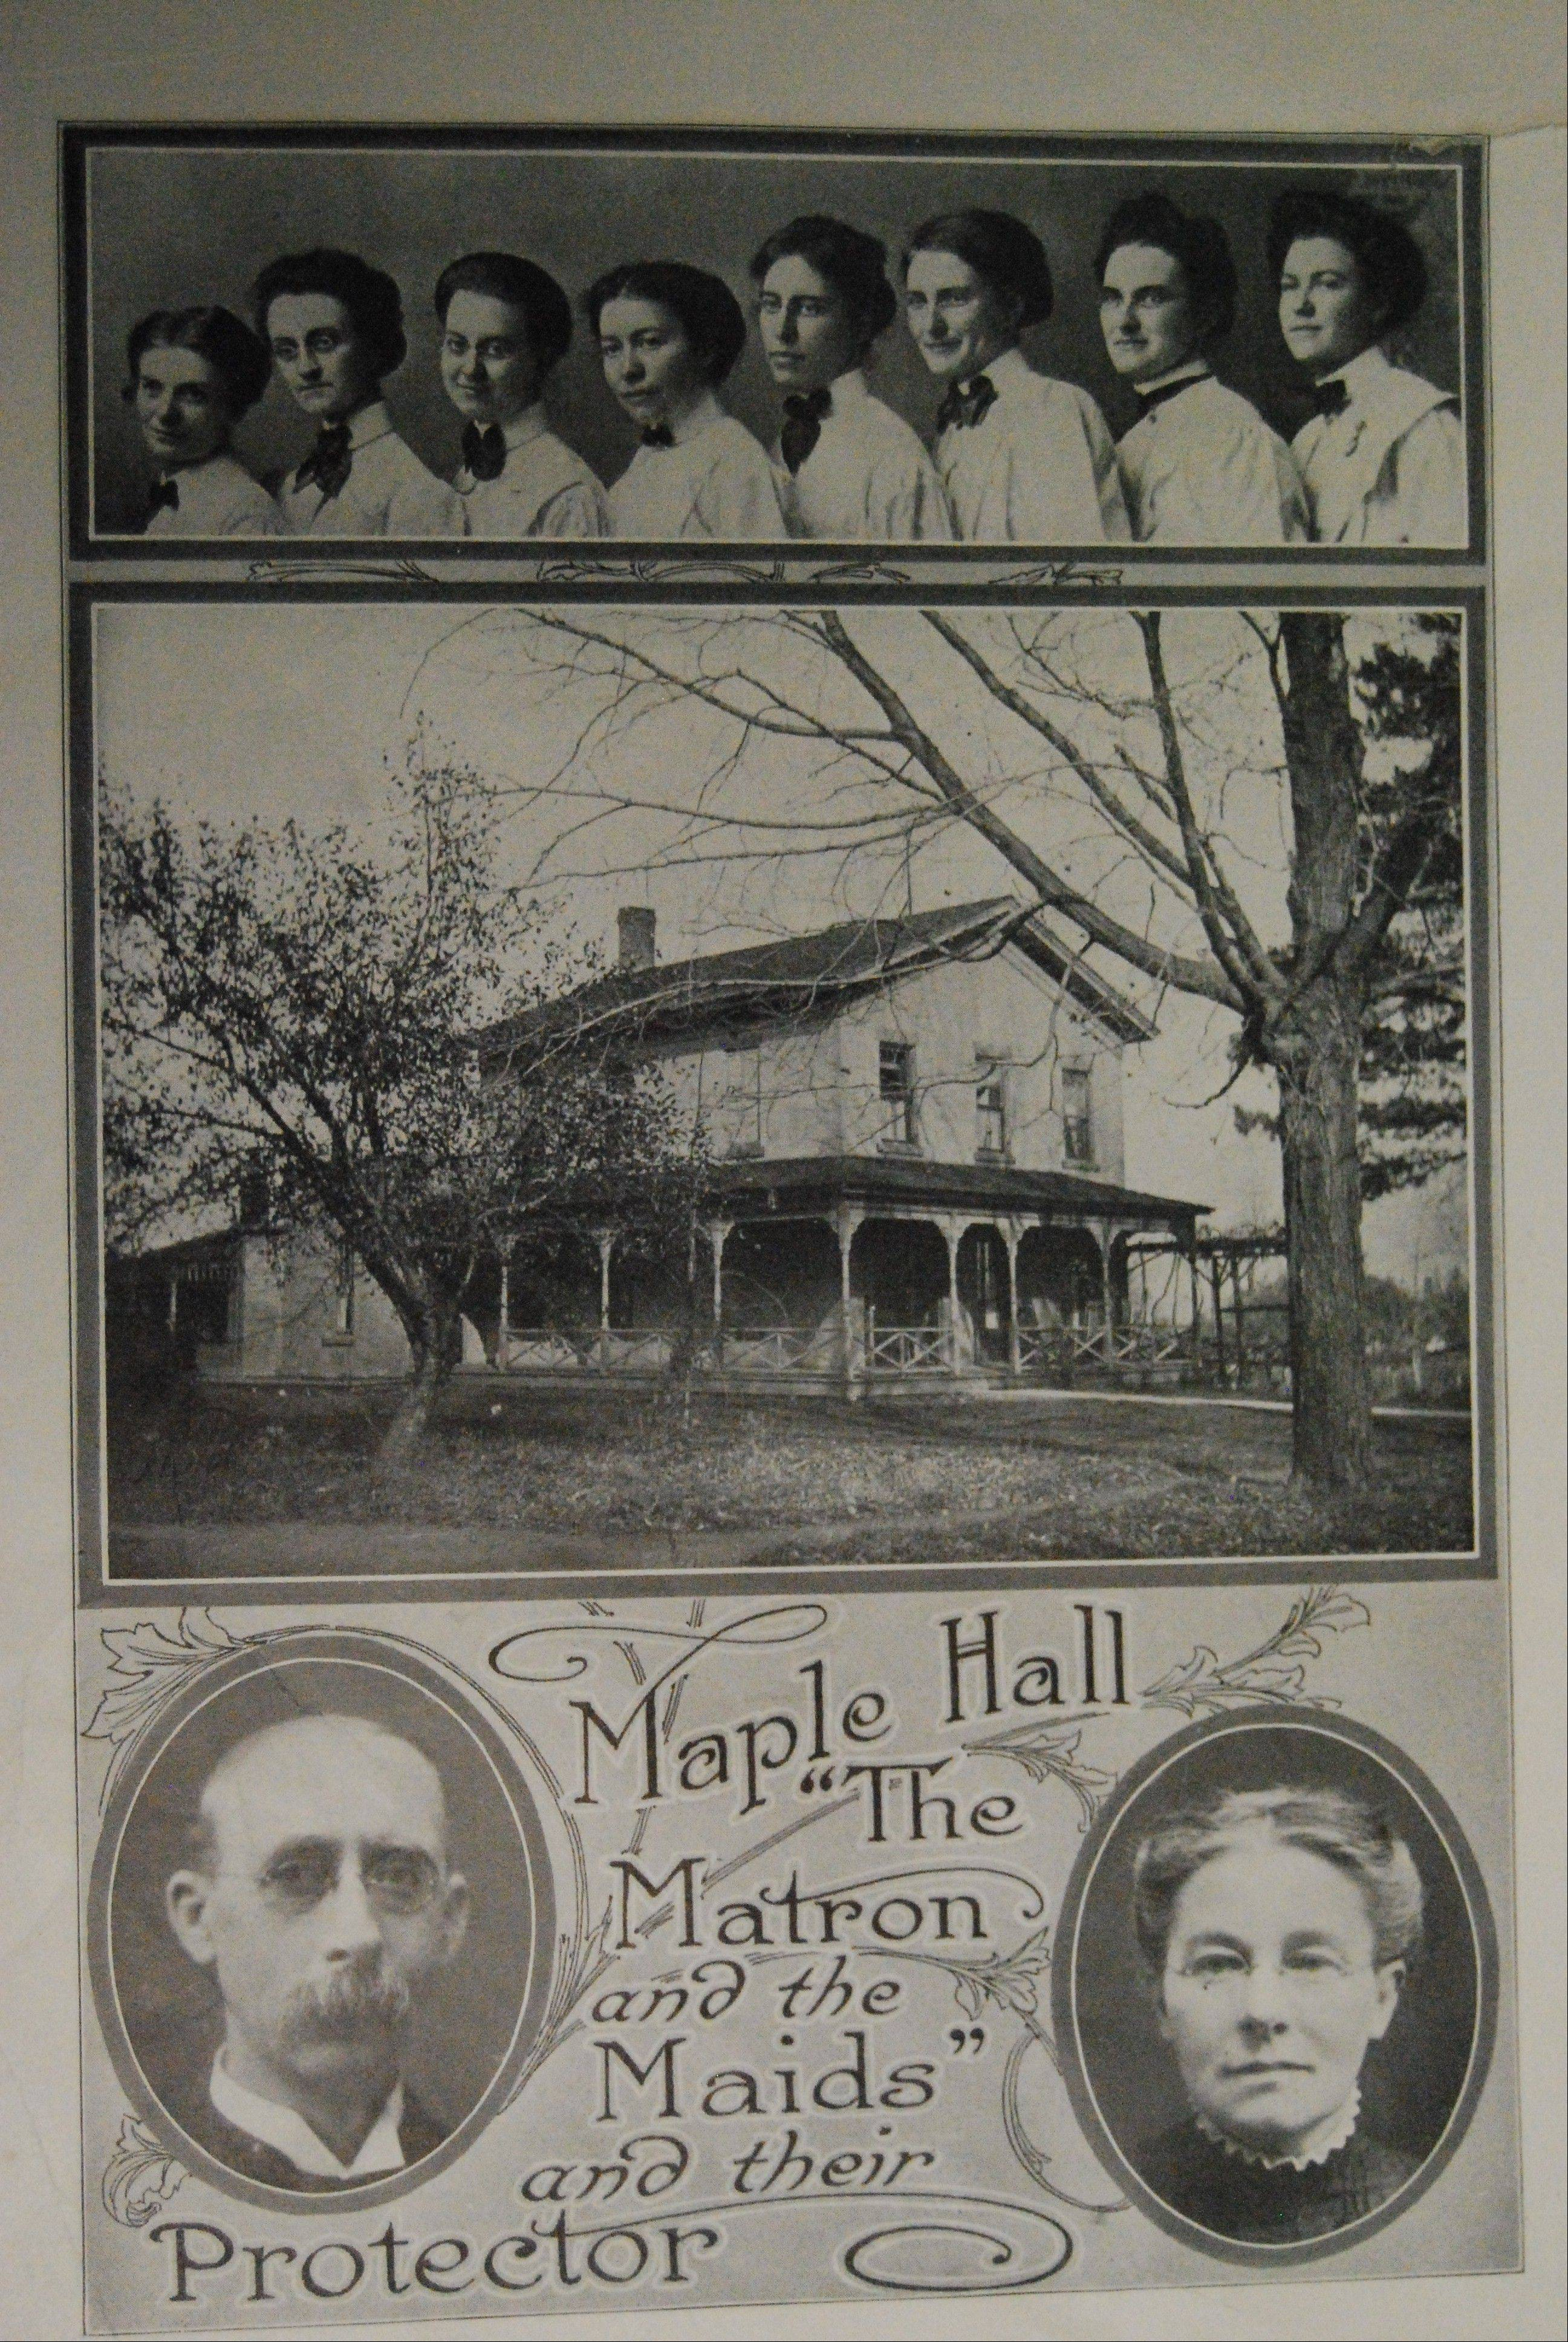 Deacon White, bottom left, and his wife Marium, bottom right, were the head residents at the Maple Hall women's dormitory at Mendota College, an Advent Christian school in Mendota. The school later moved to Aurora and became Aurora University.